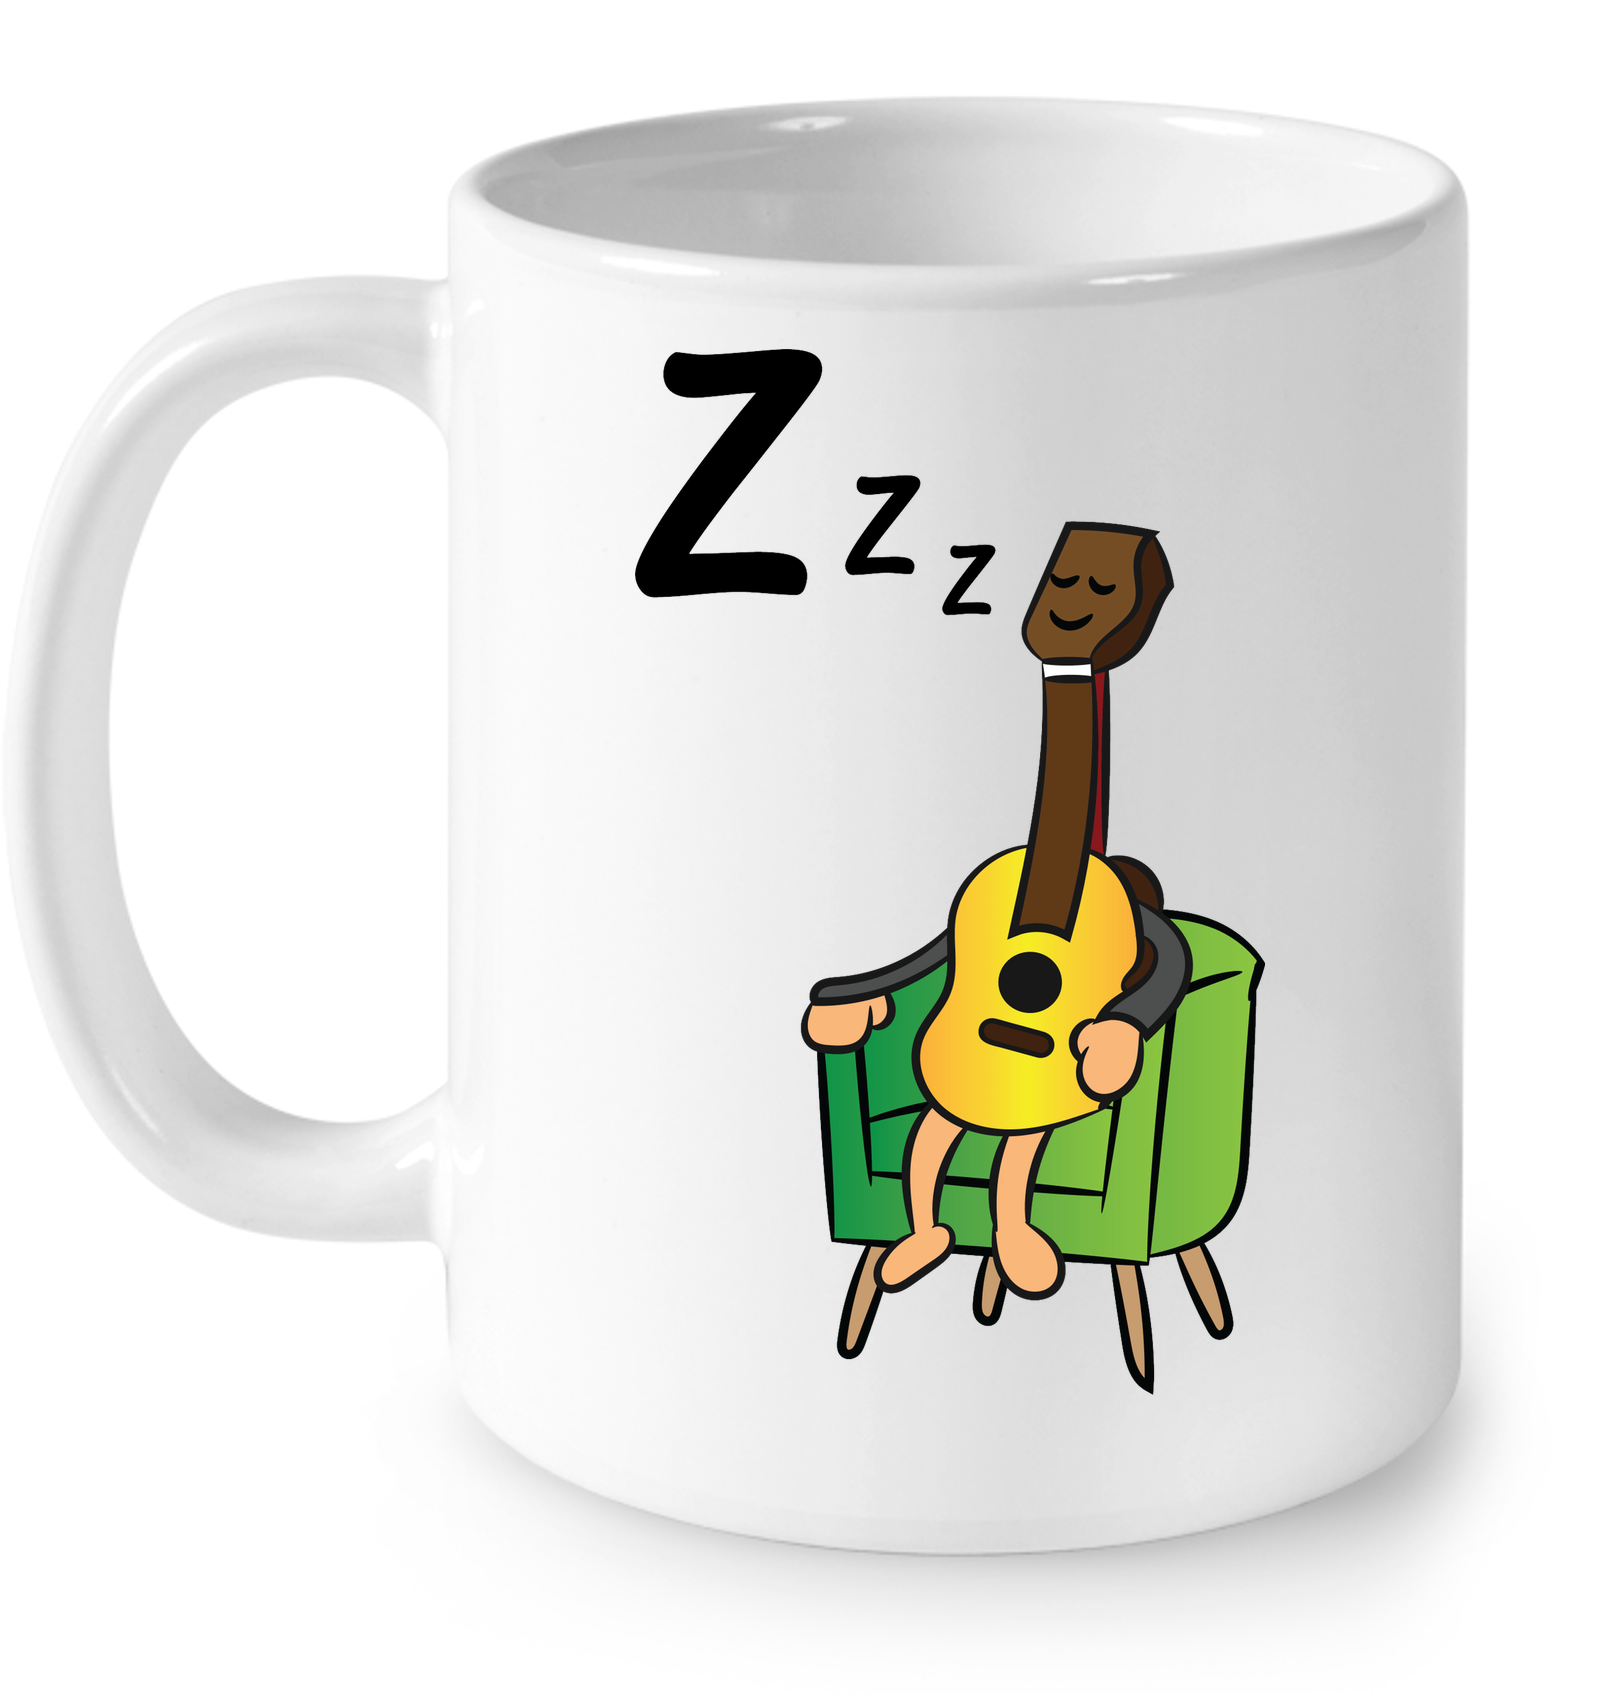 Sleeping Guitar - Ceramic Mug